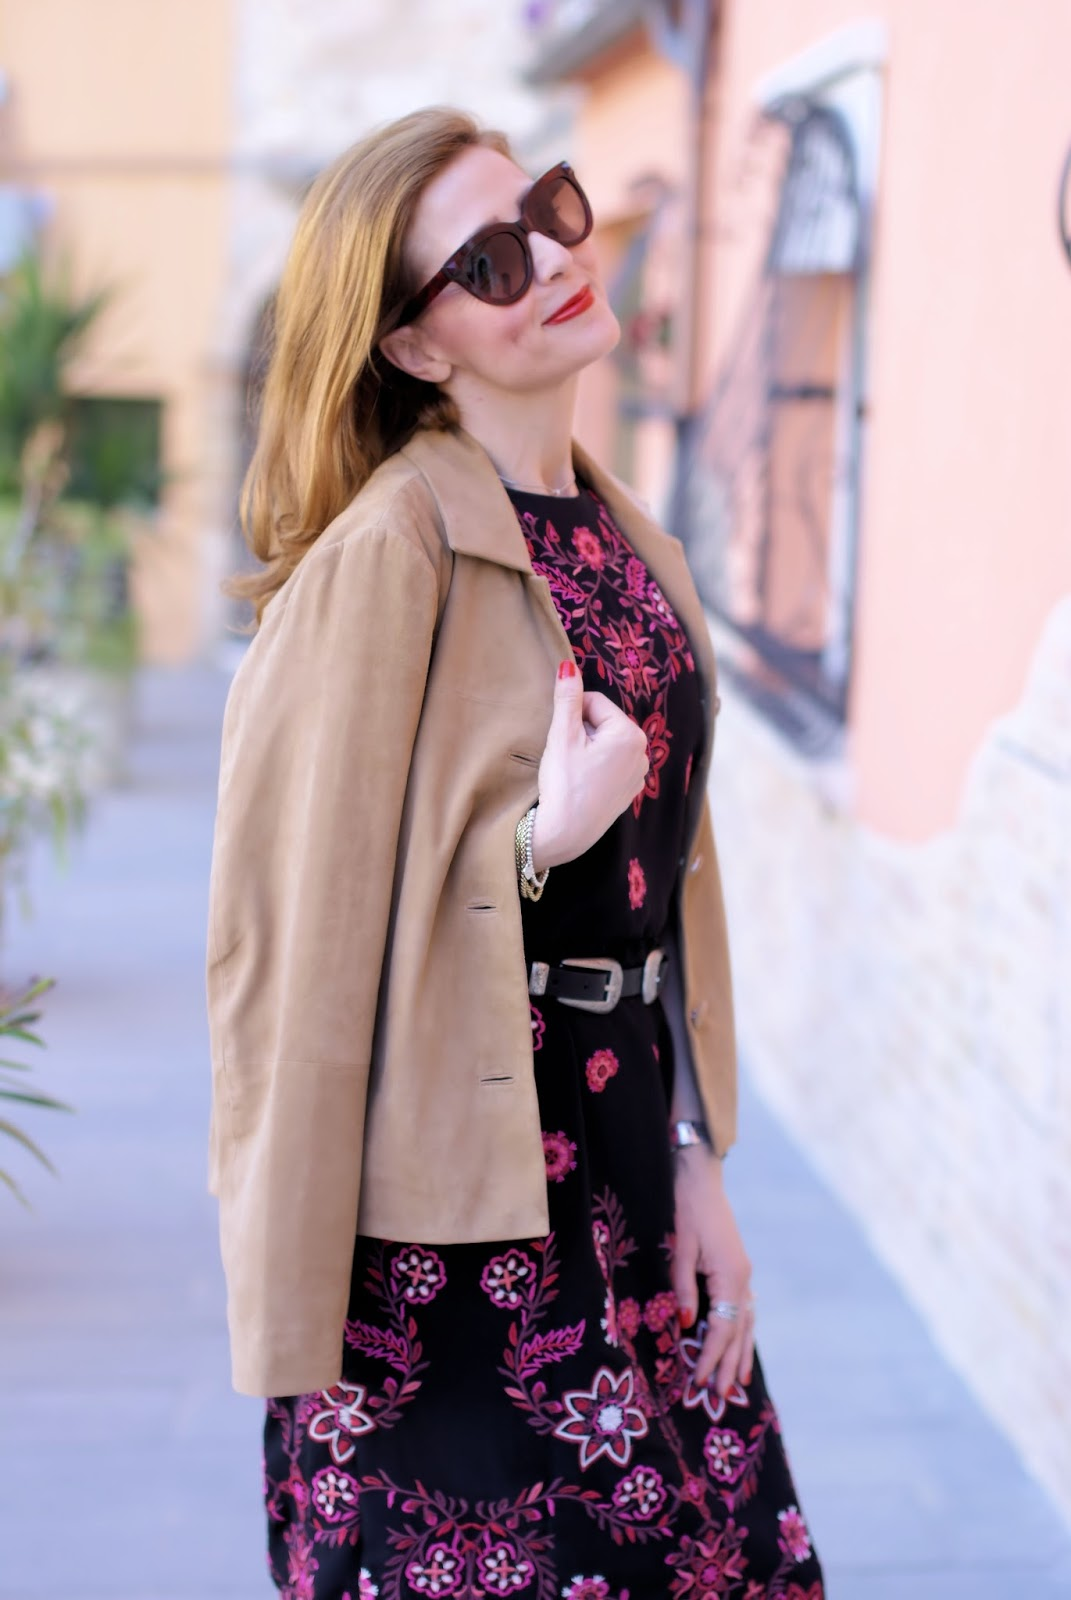 Western folk chic outfit: Tilane jacket from 1.2.3 Paris on Fashion and Cookies fashion blog, fashion blogger style